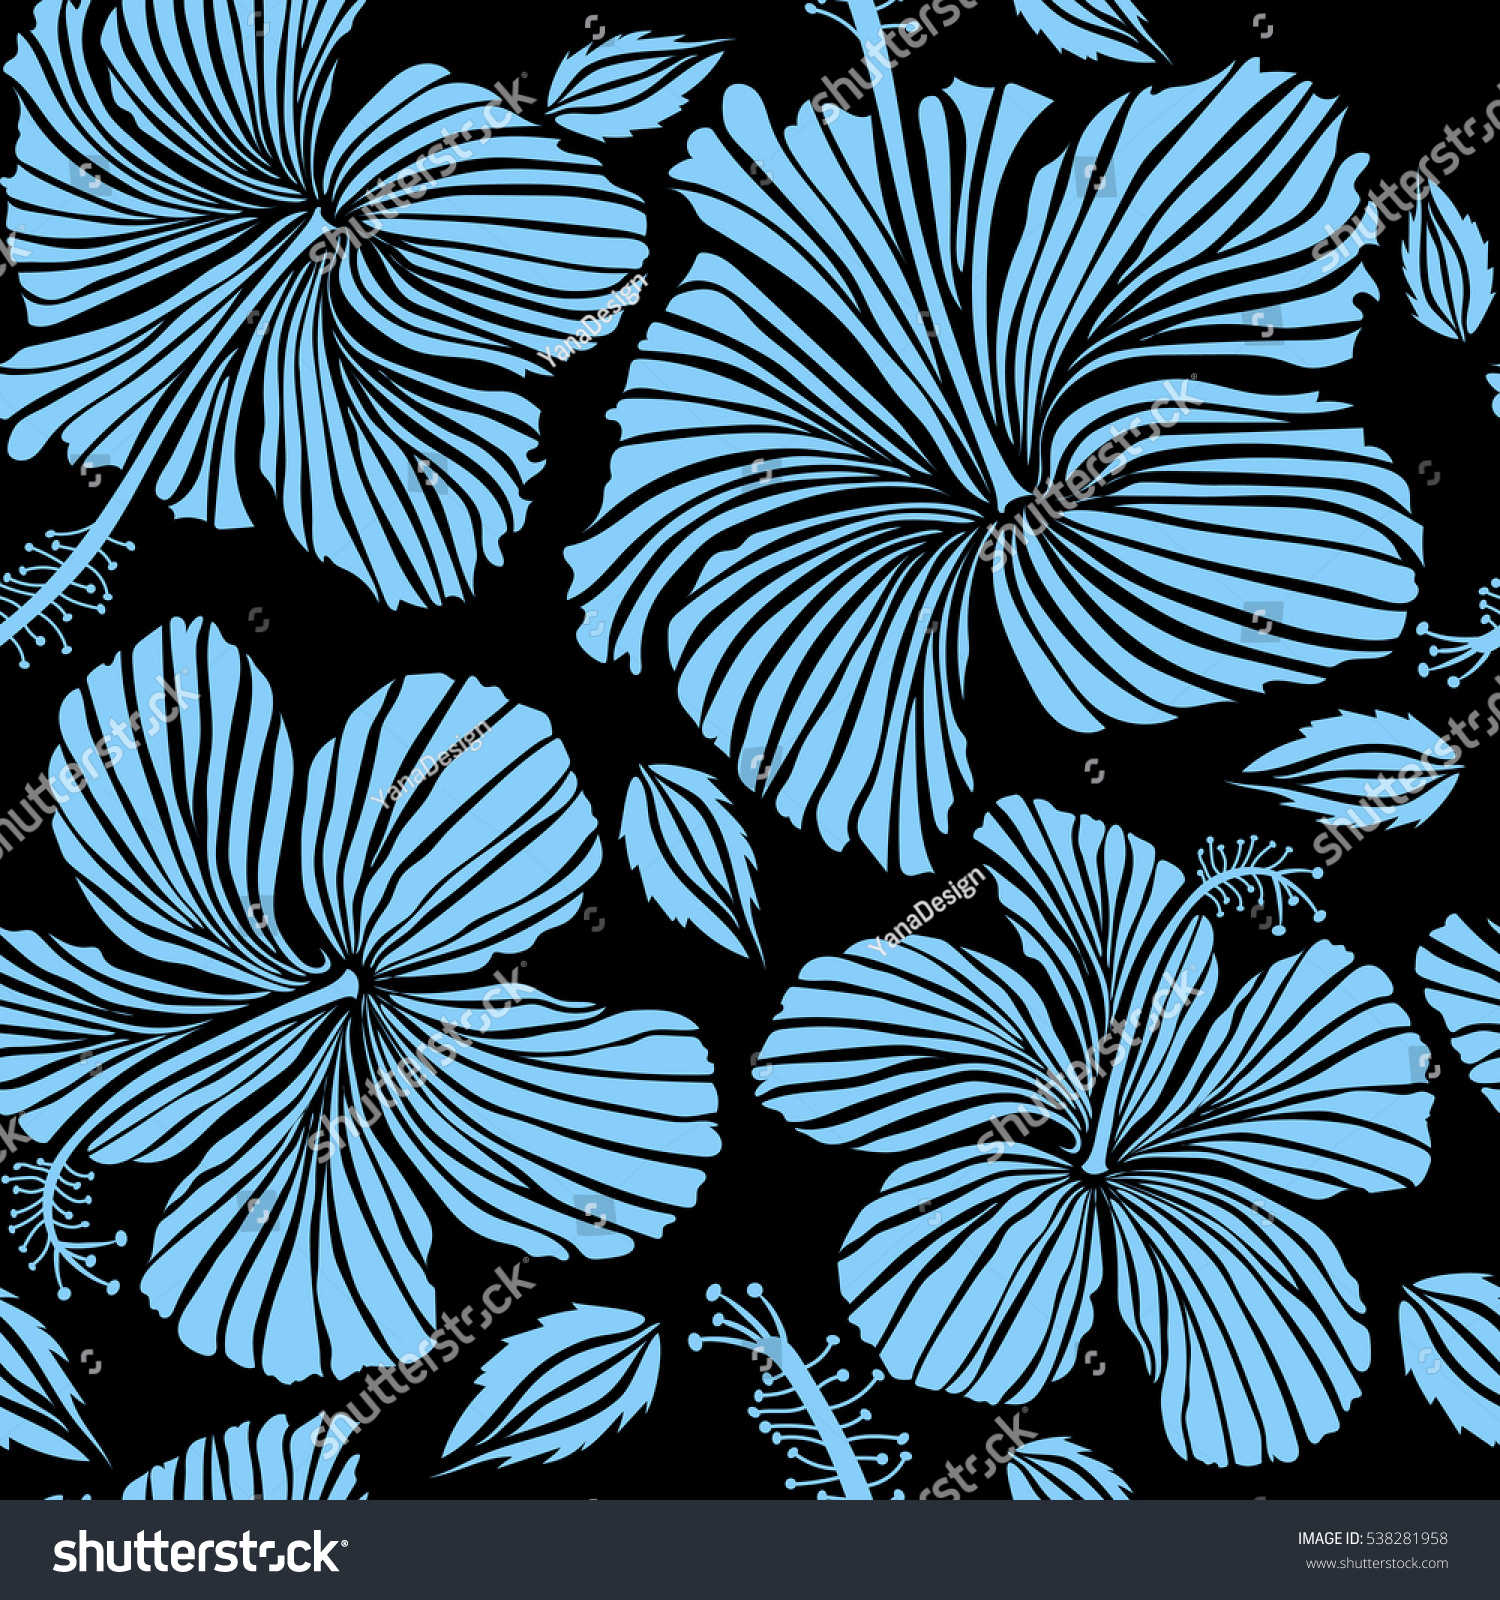 Hibiscus flower blue colors on black stock illustration 538281958 hibiscus flower in blue colors on a black background izmirmasajfo